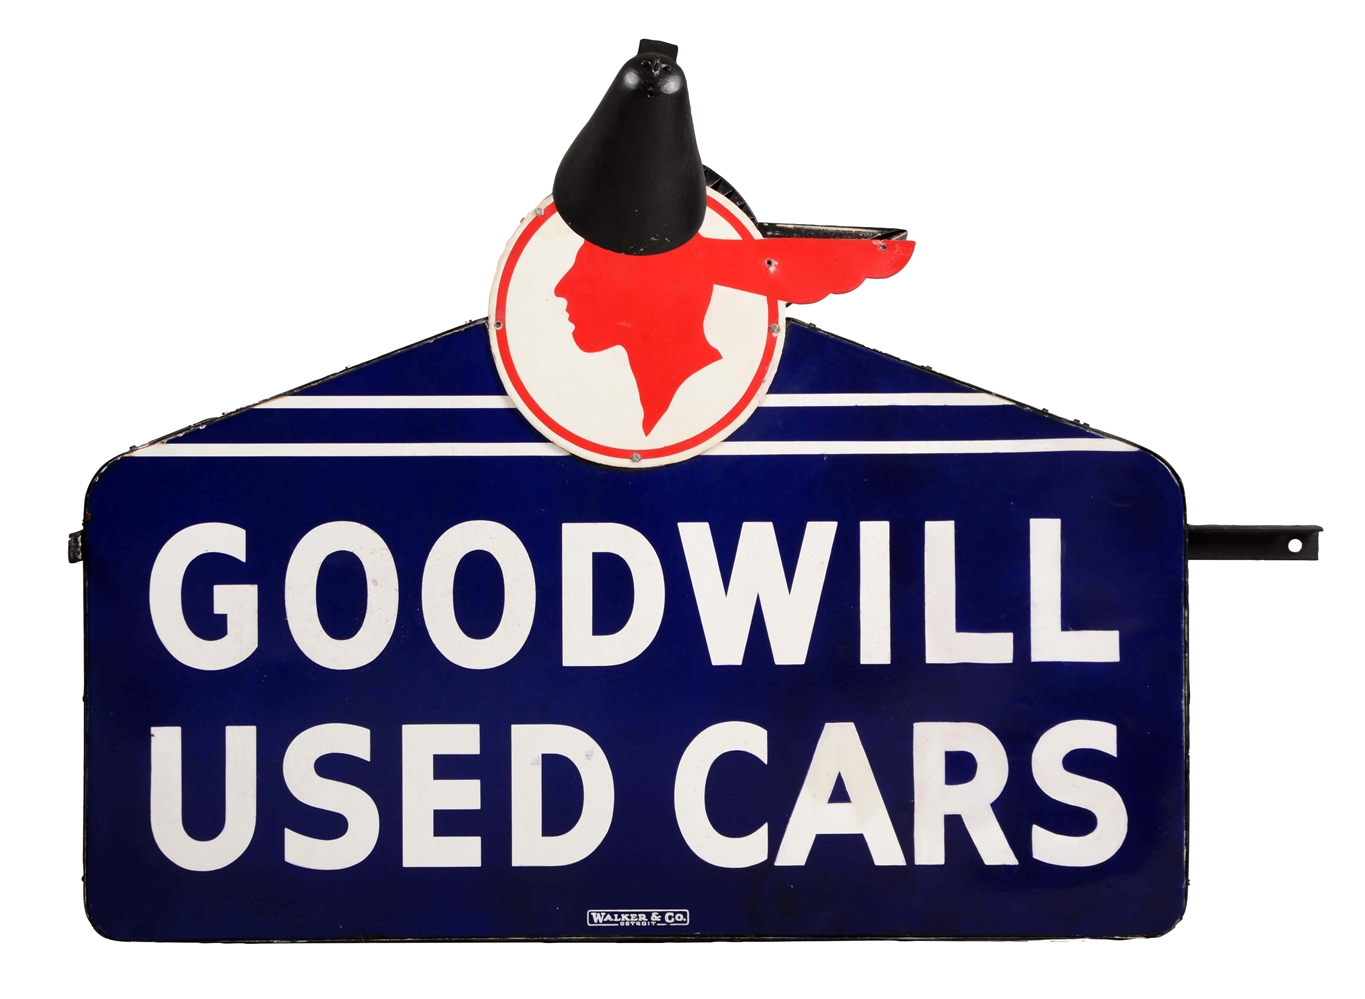 Goodwill Used Cars Die Cut Porcelain Sign On Metal Can with Light Sconces.